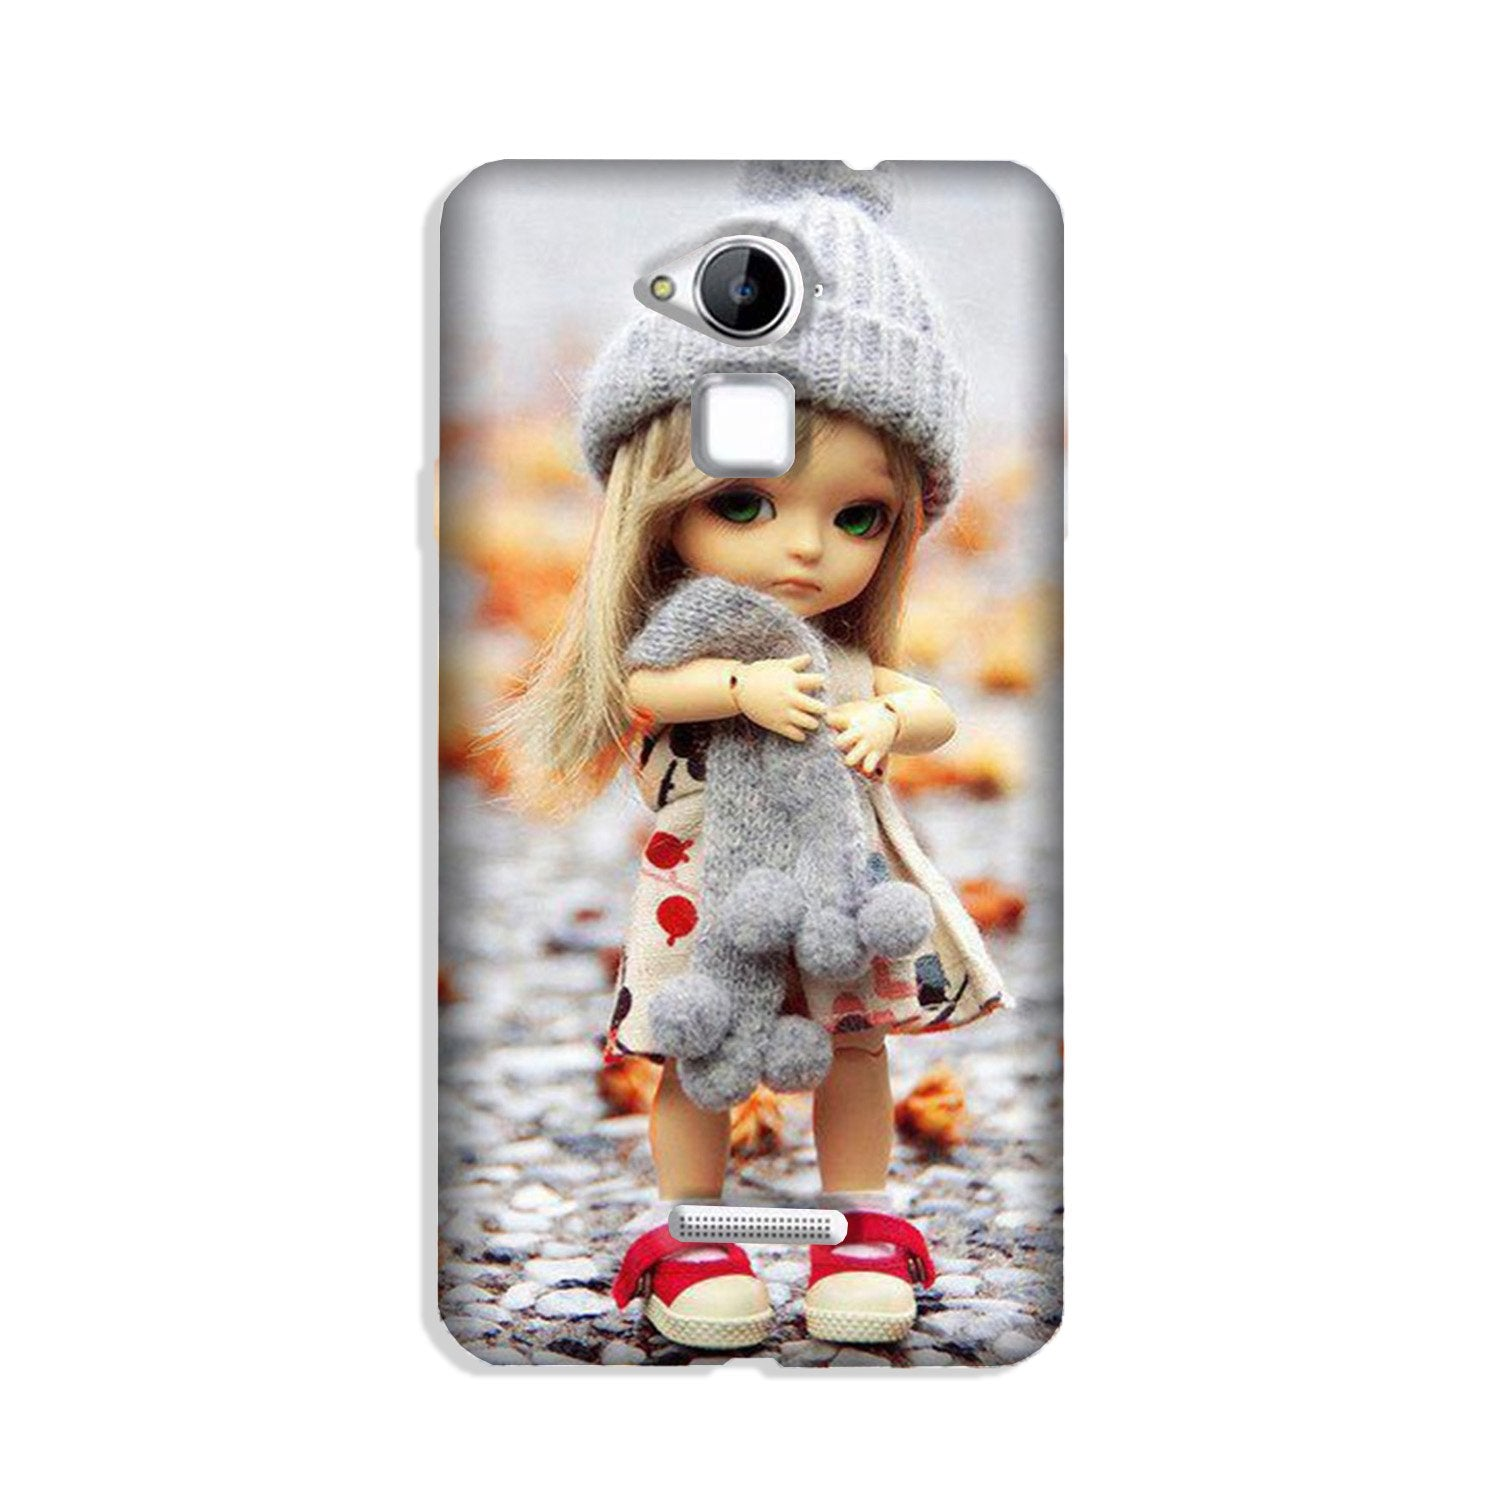 Cute Doll Case for Coolpad Note 3